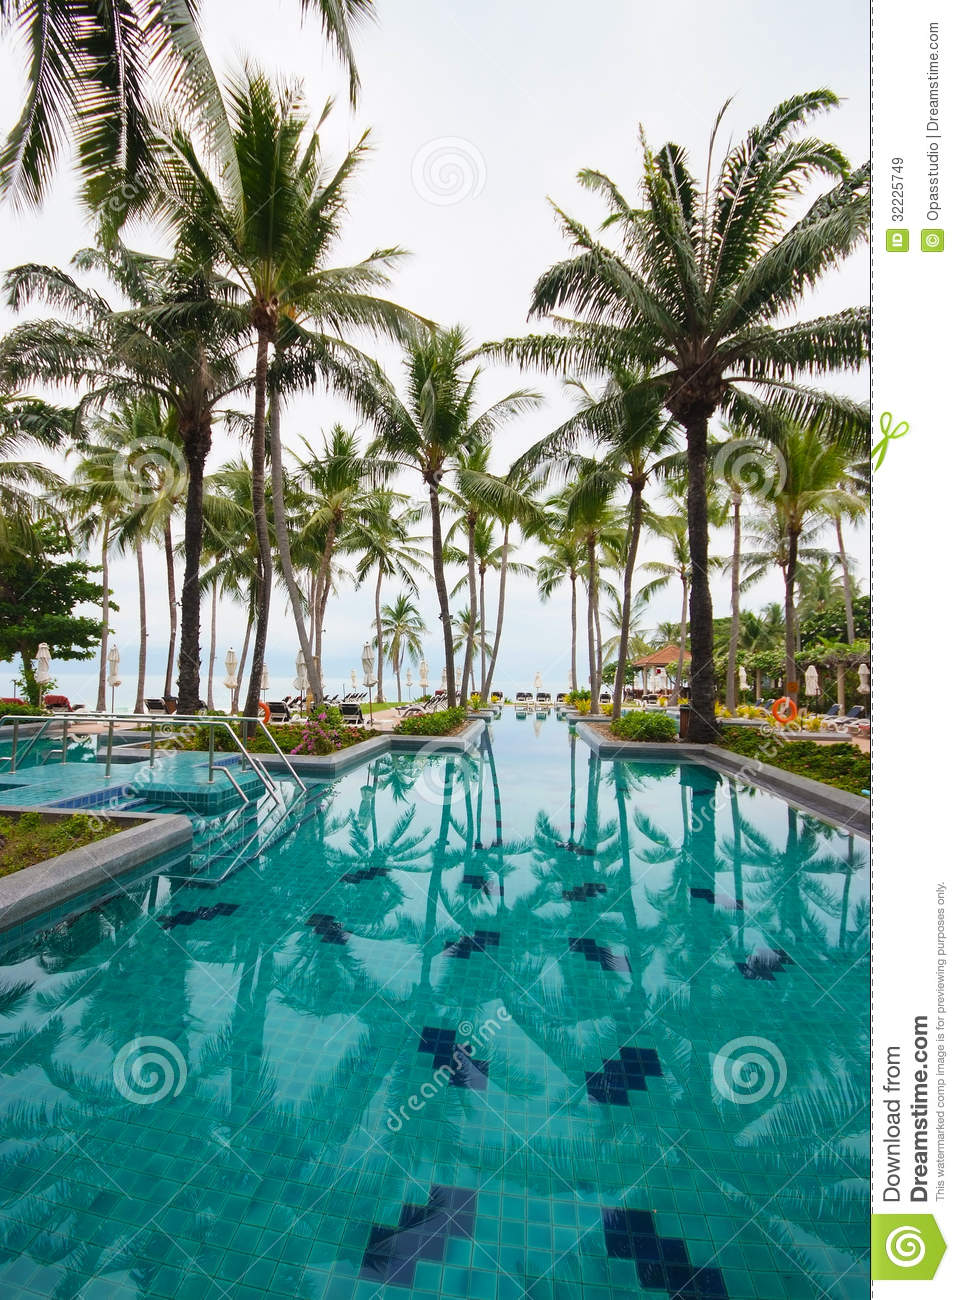 beach umbrella for chair office wheel replacement swimming pool beside the sea with coconut tree. royalty free stock images - image: 32225749